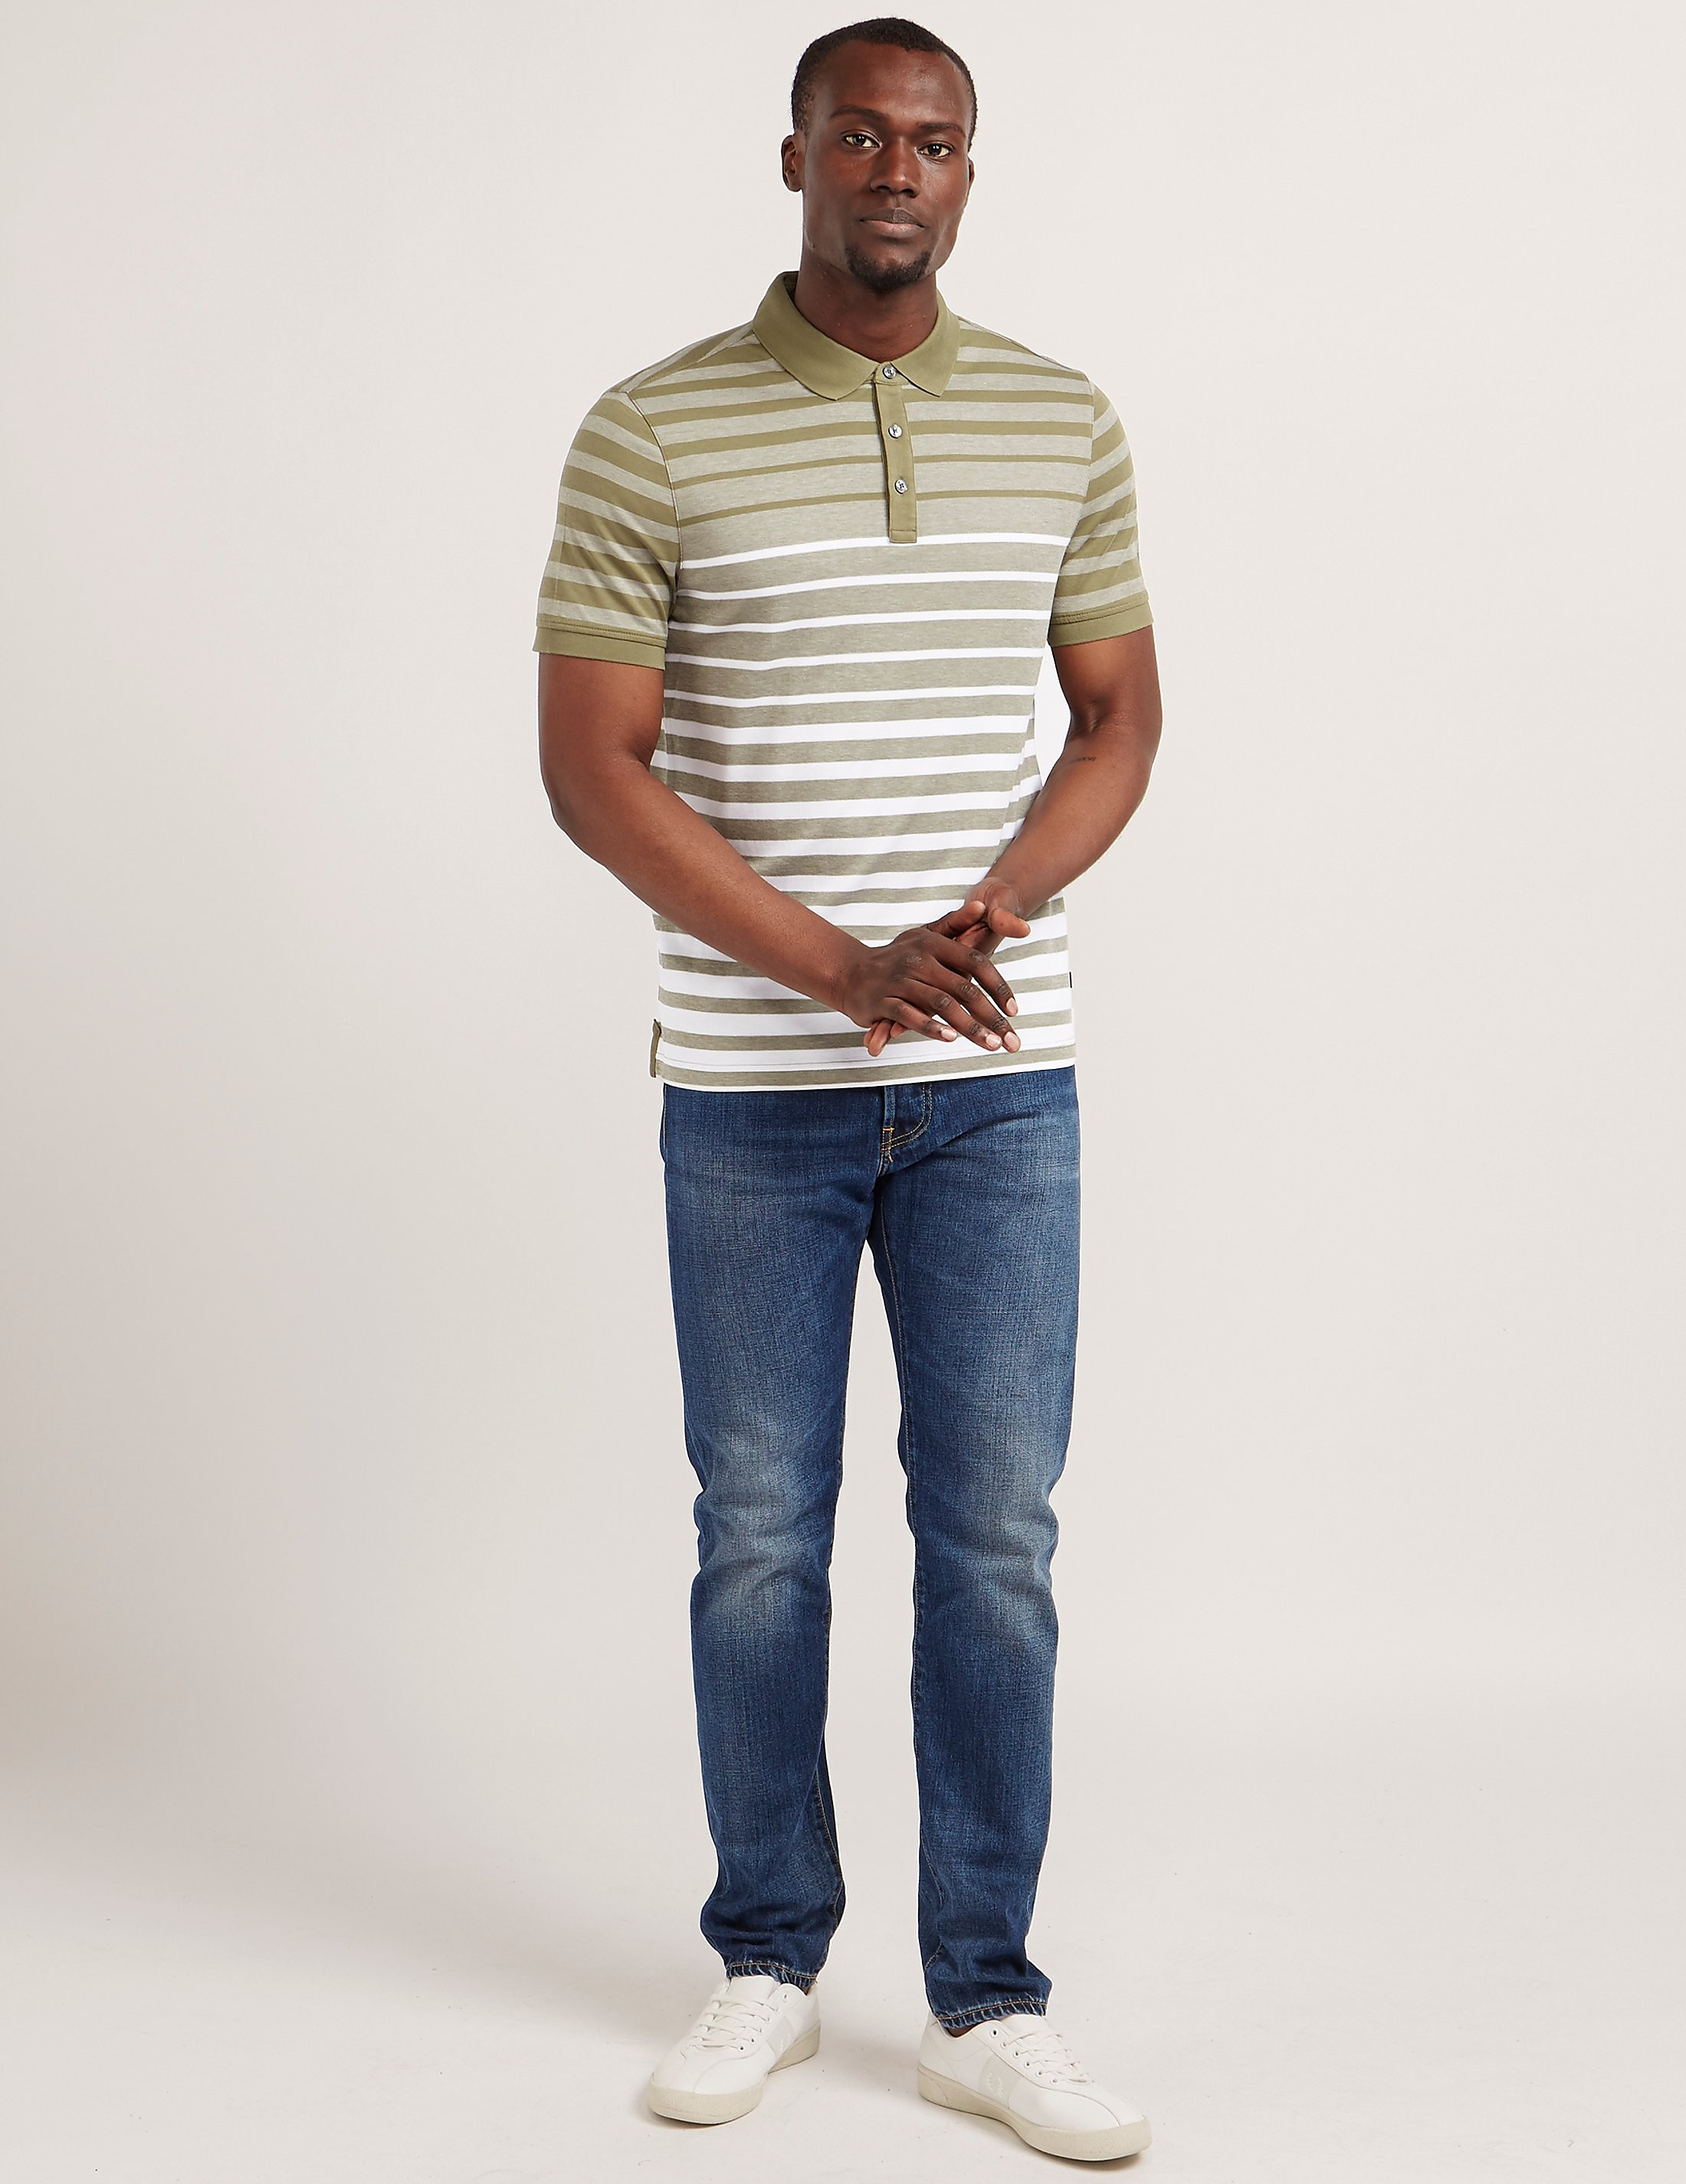 Michael Kors Striped Short Sleeve Polo Shirt